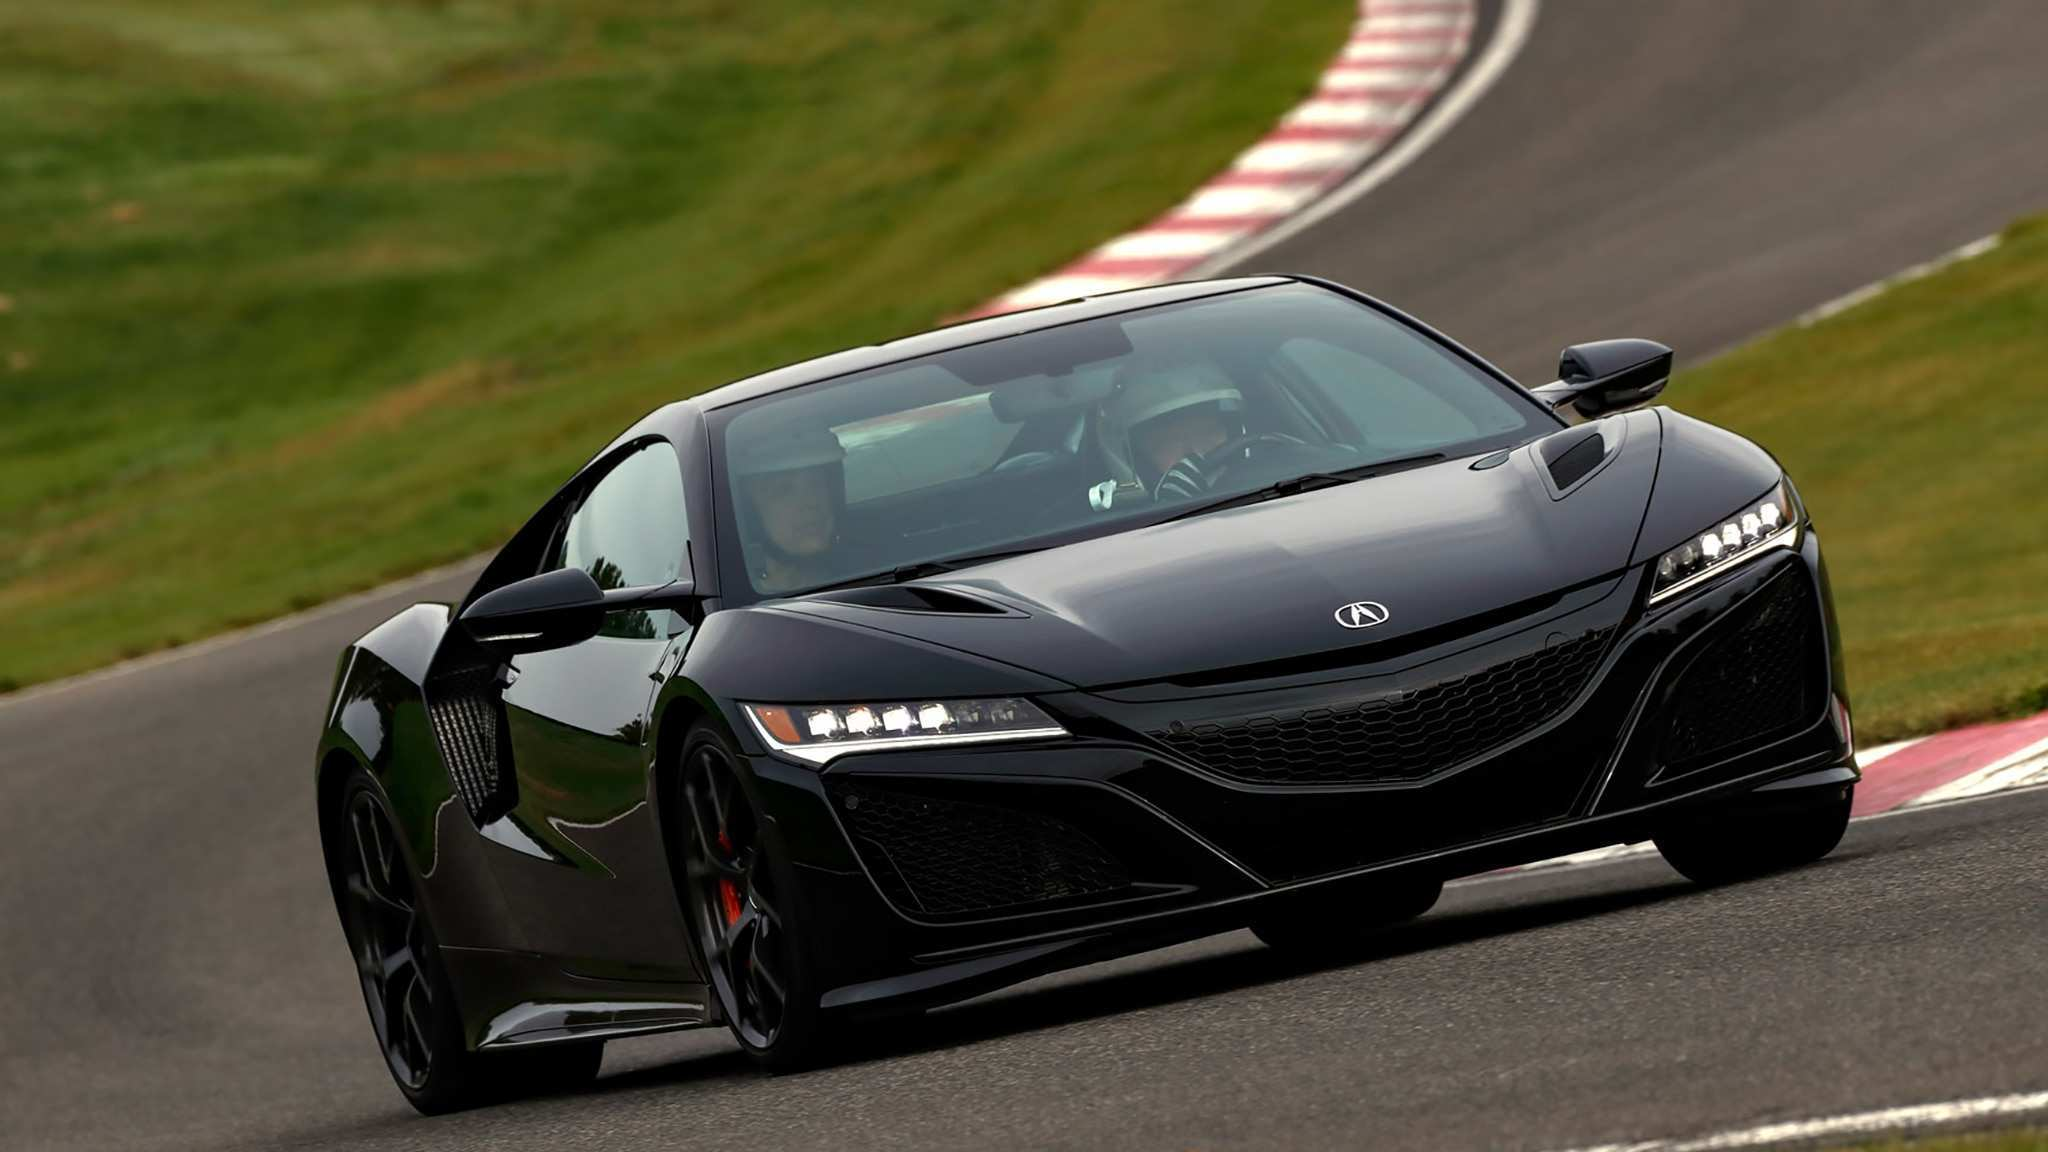 52 All New 2019 Acura Nsx Review for 2019 Acura Nsx